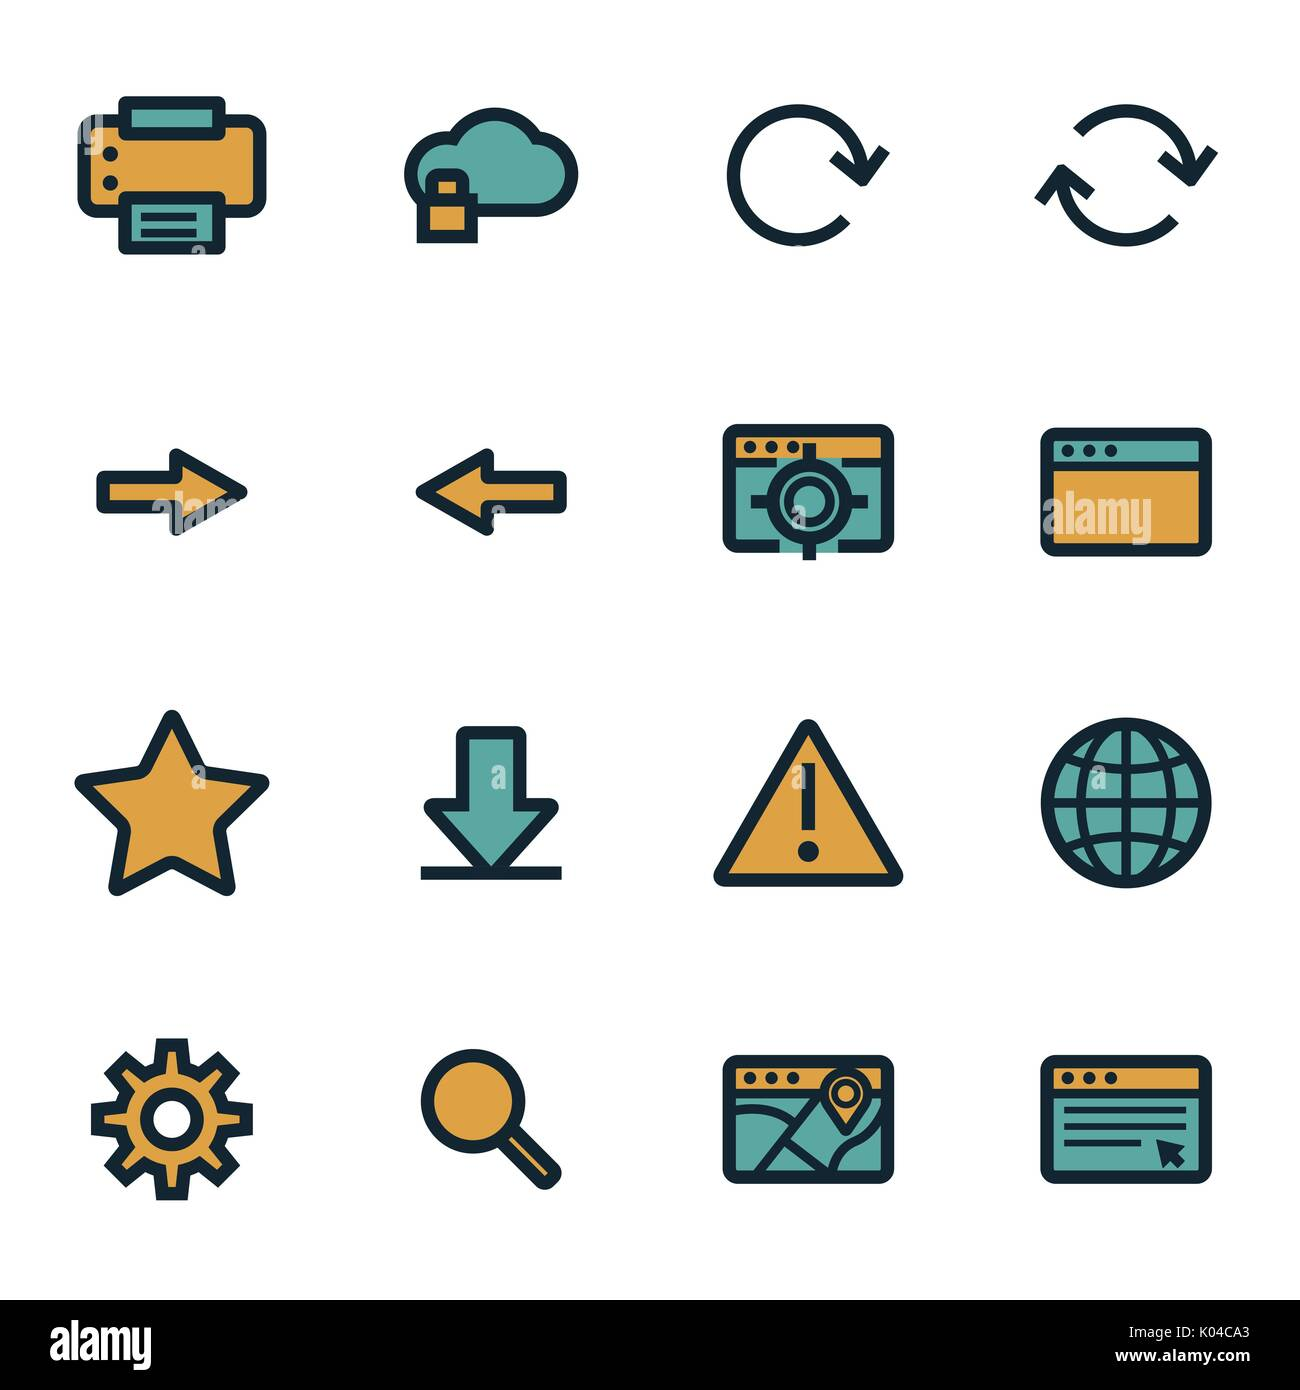 Vector flat browser icons set - Stock Image